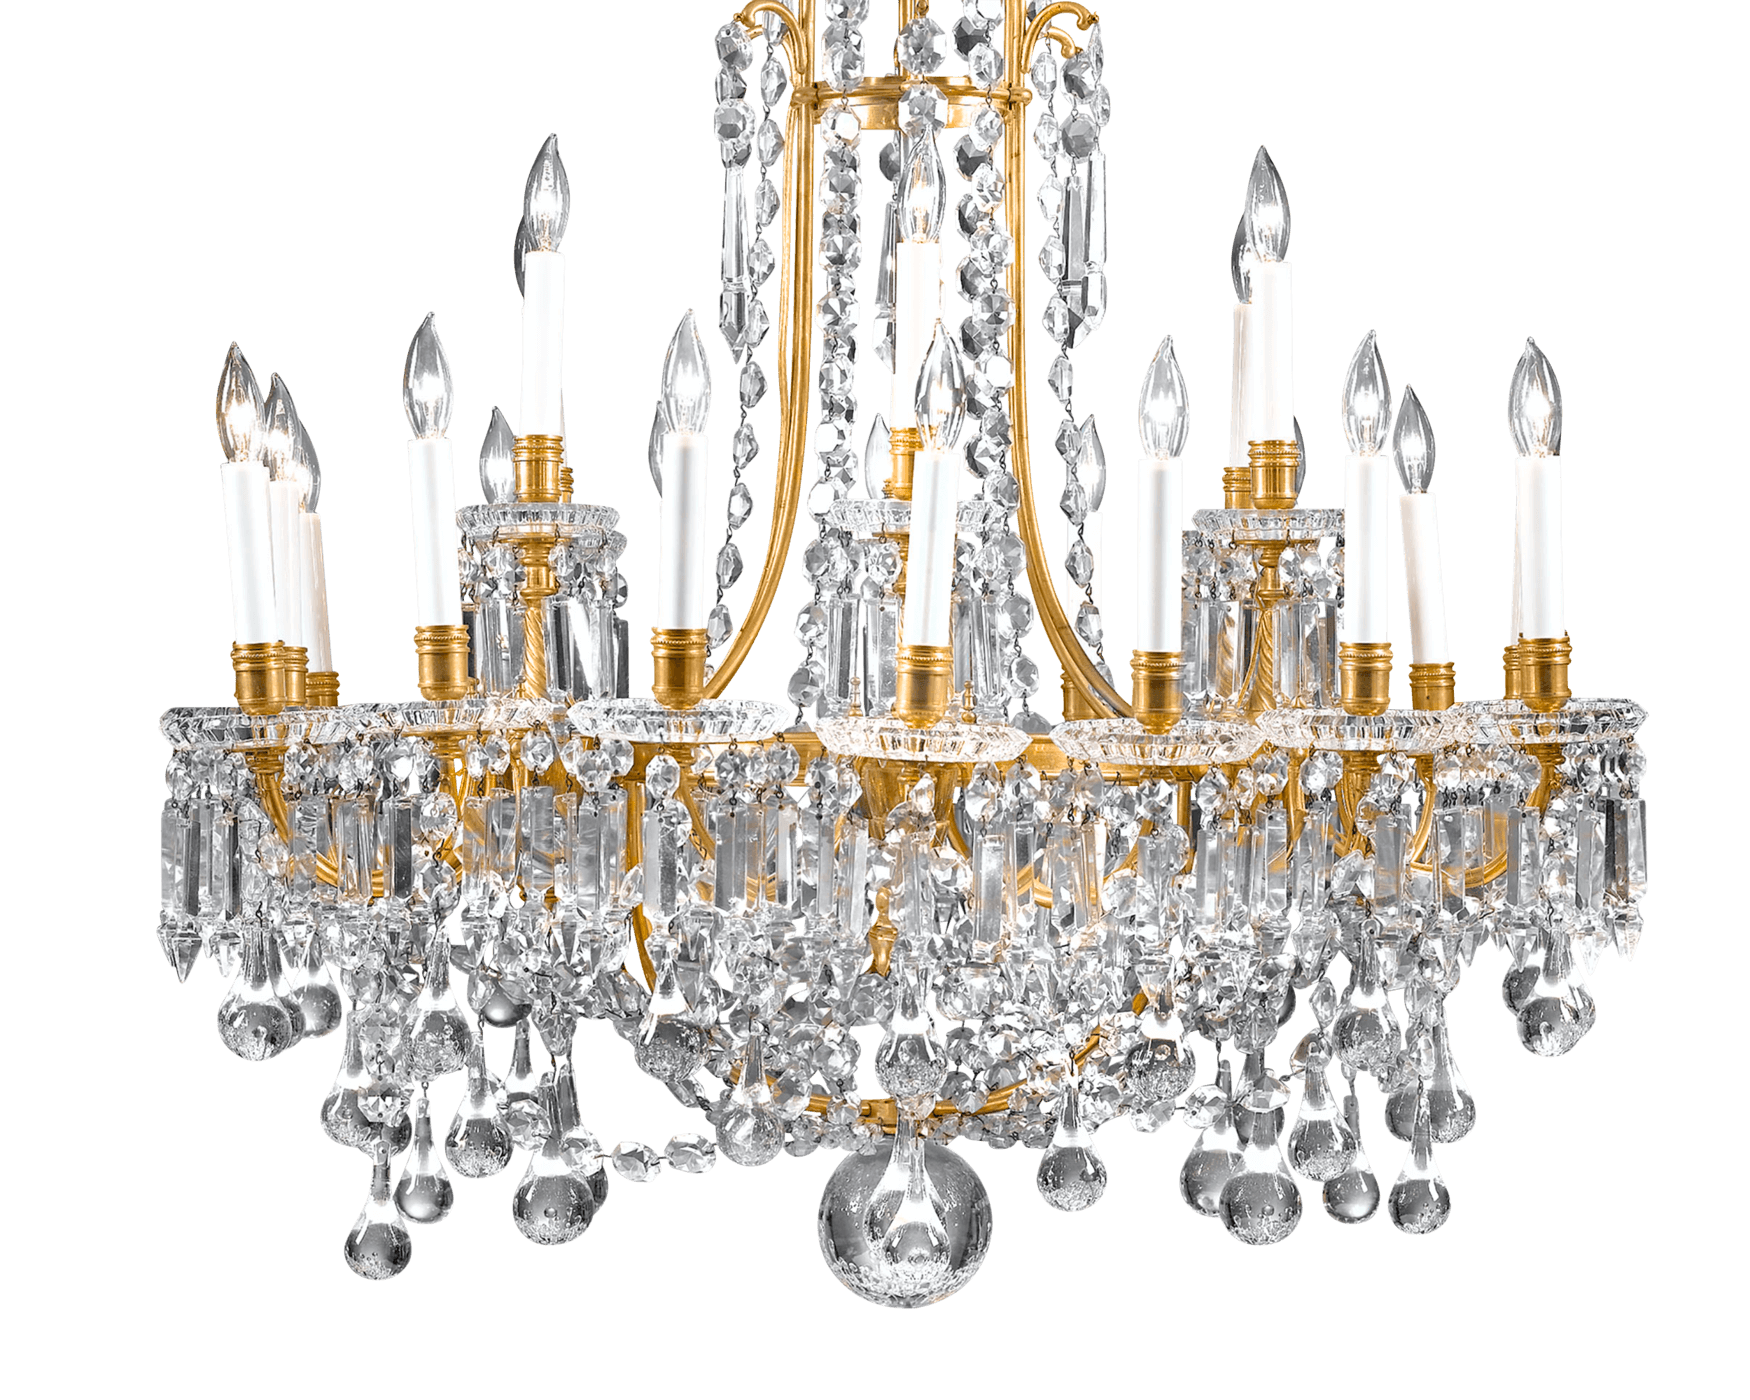 Chandelier png. Transparent picture mart jpg black and white